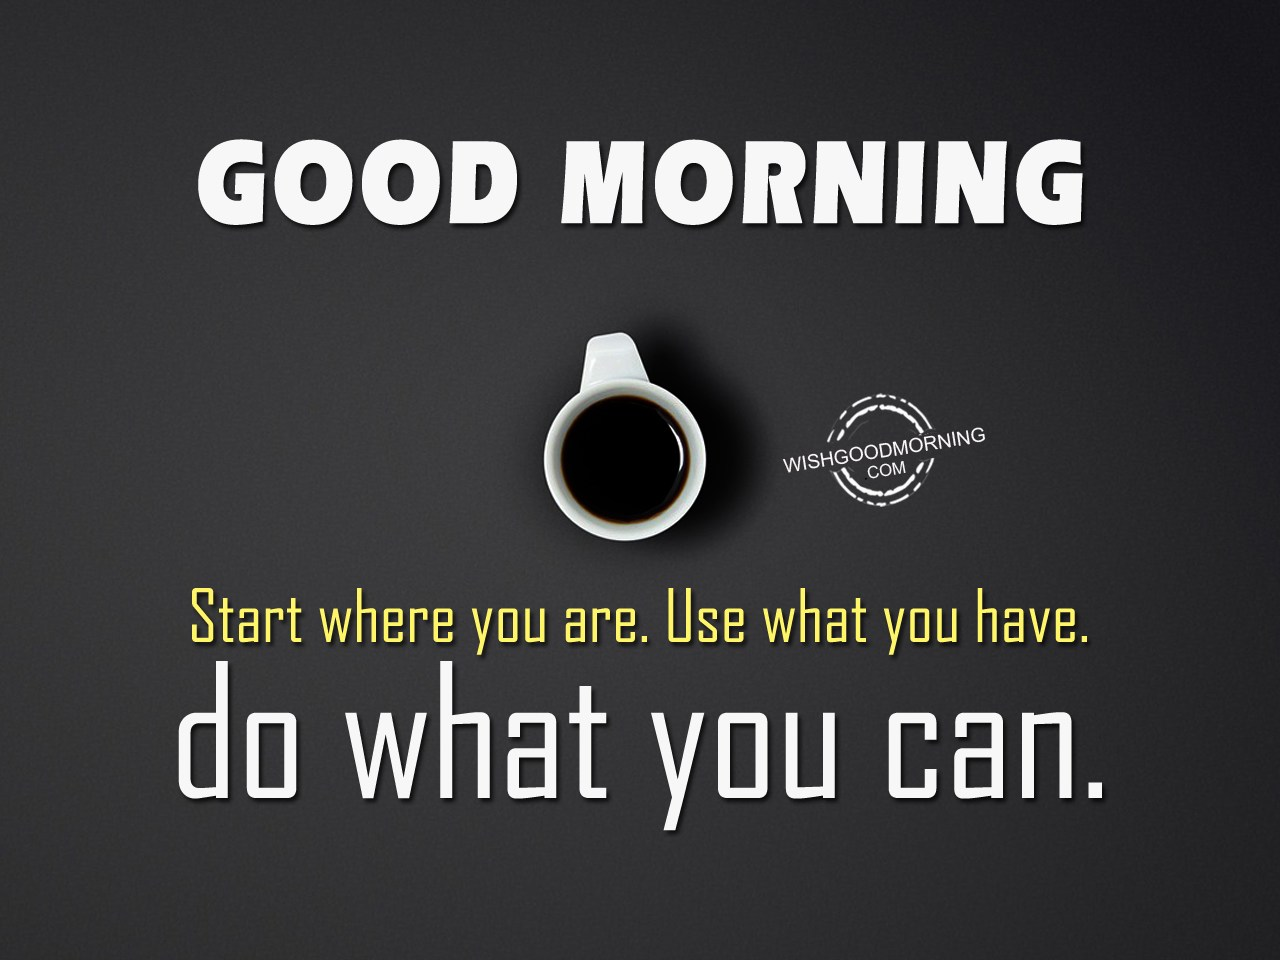 Good Morning Vietnam If You Do : Do what you can good morning pictures wishgoodmorning